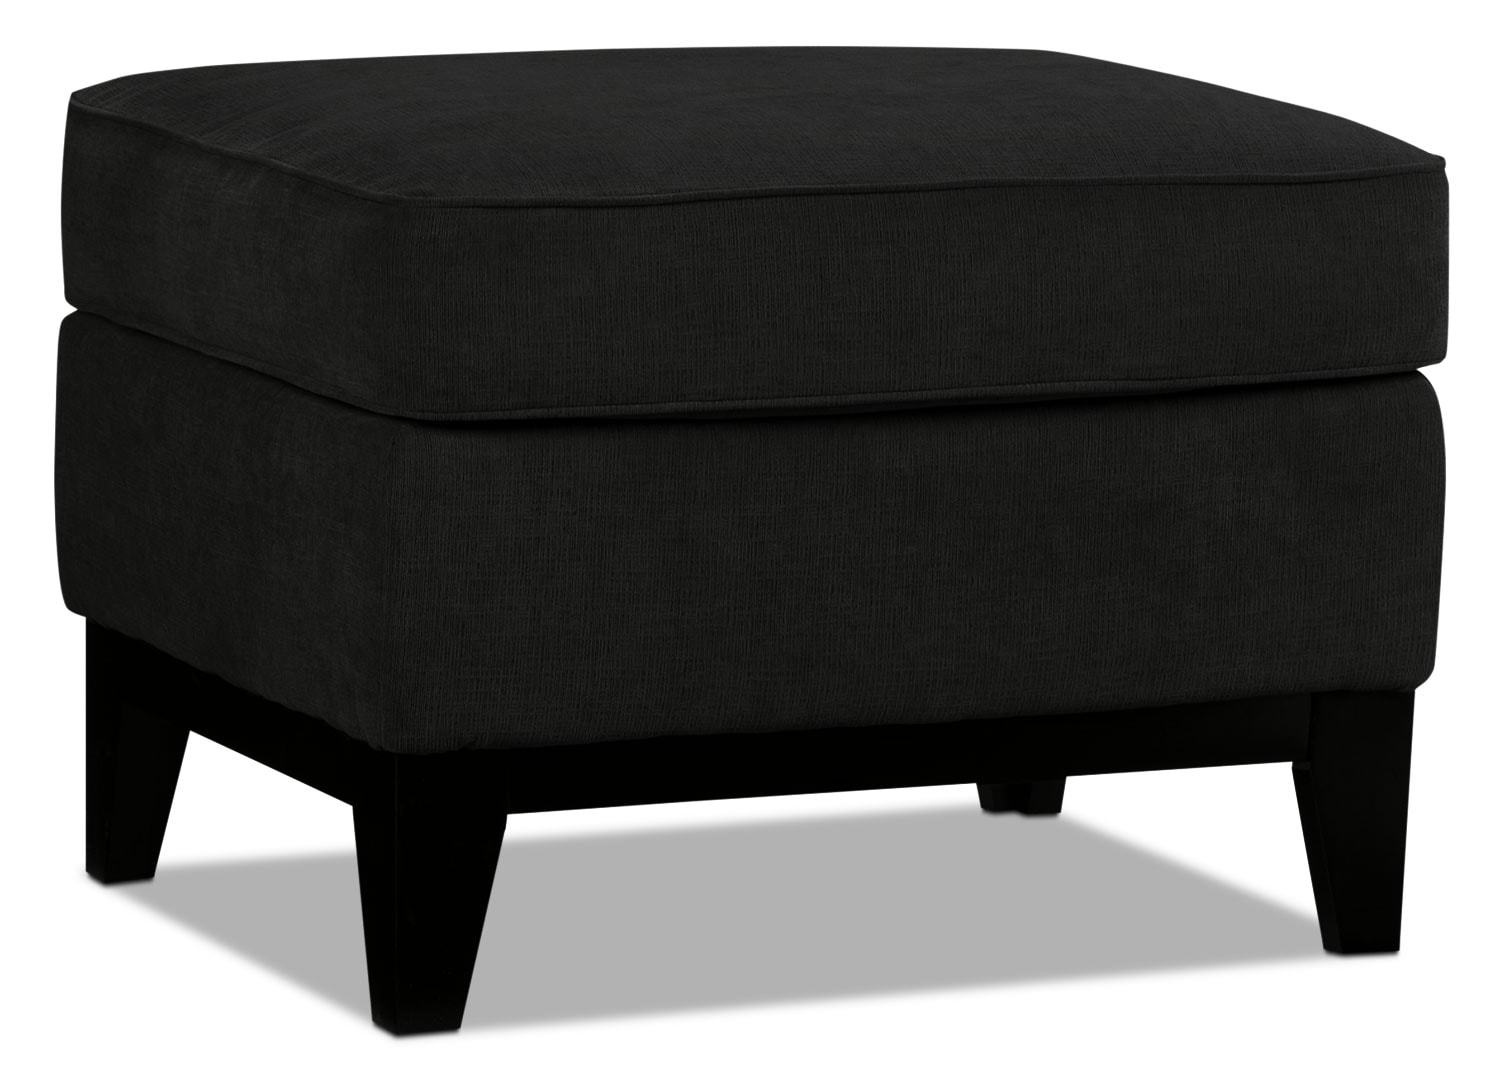 Living Room Furniture - Crizia Ottoman - Black